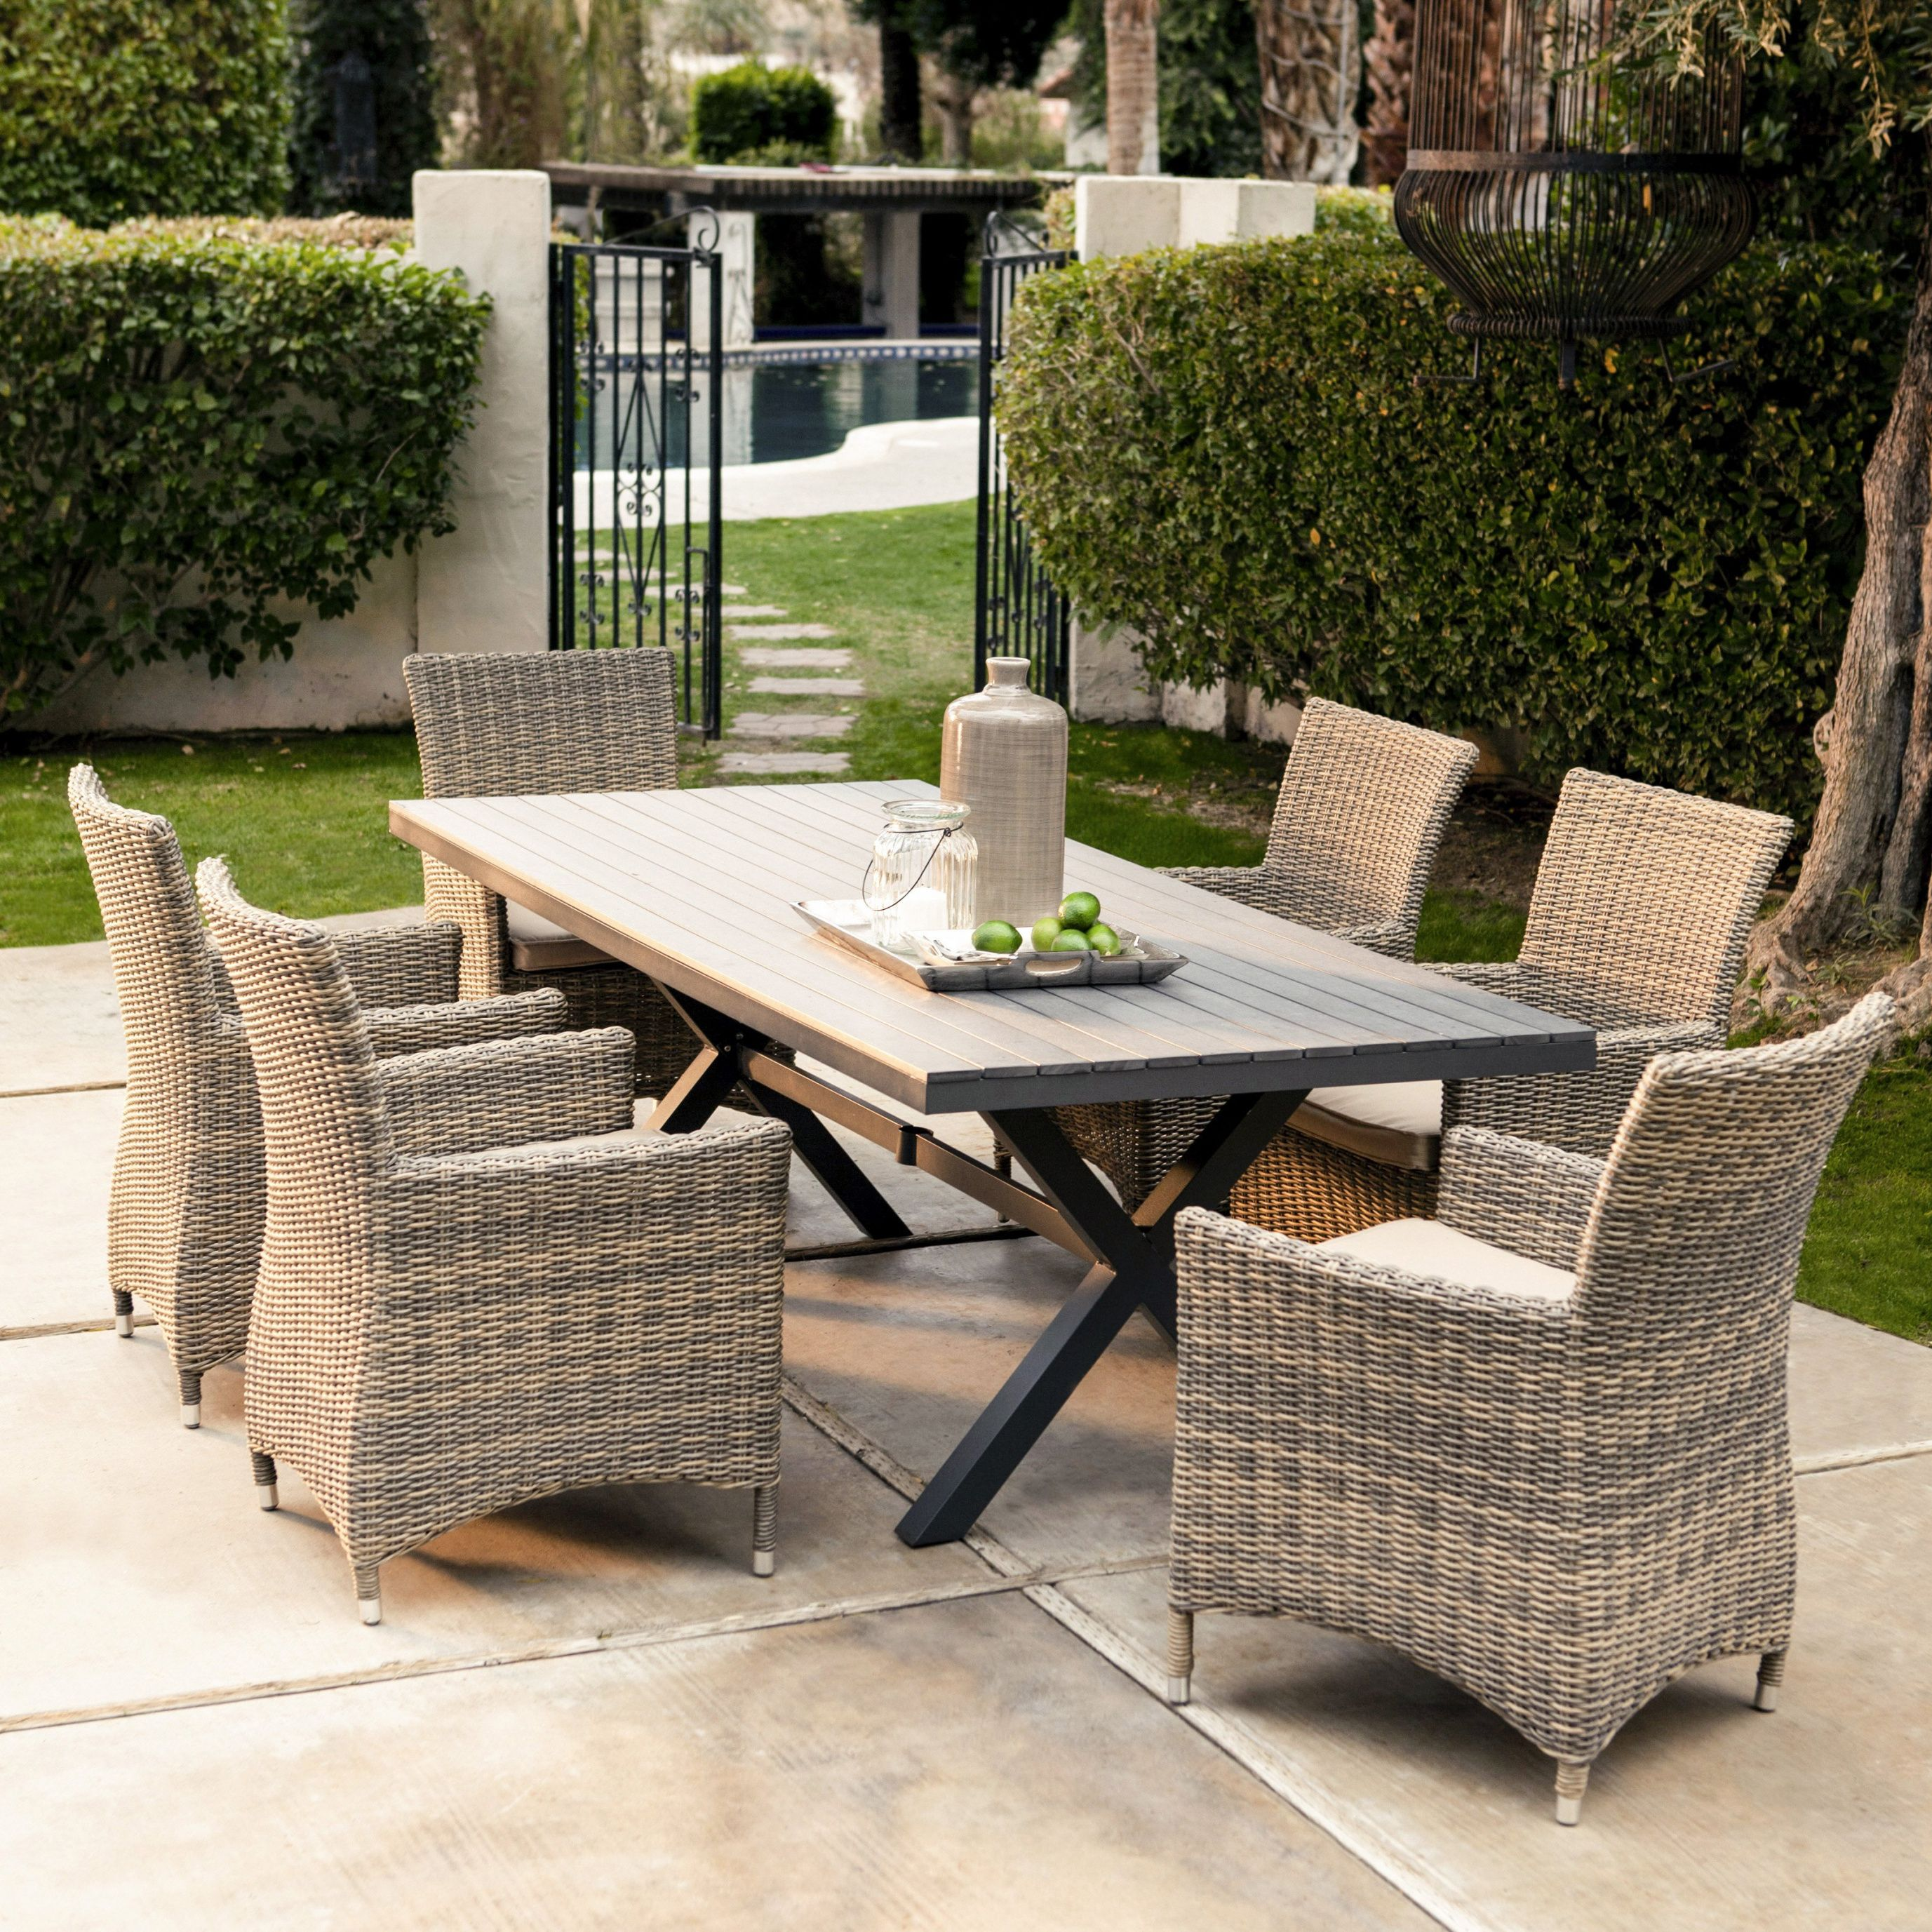 Best Of Outside Patio Furniture Sale